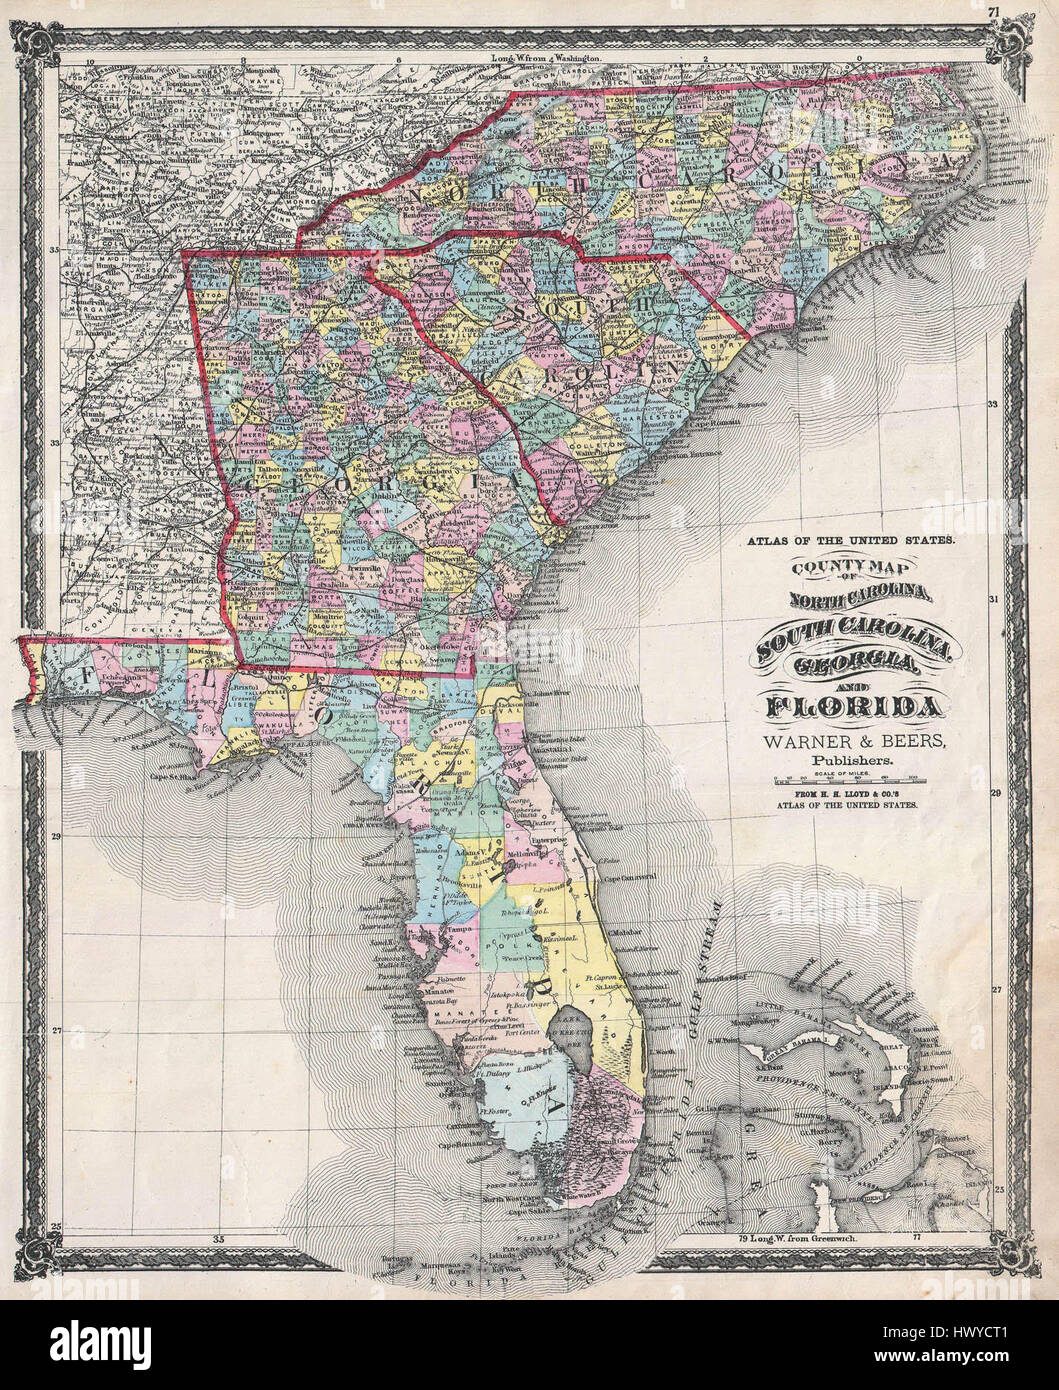 Map Of Florida Georgia South Carolina 1874 Beers Map of Florida, Georgia, North Carolina and South